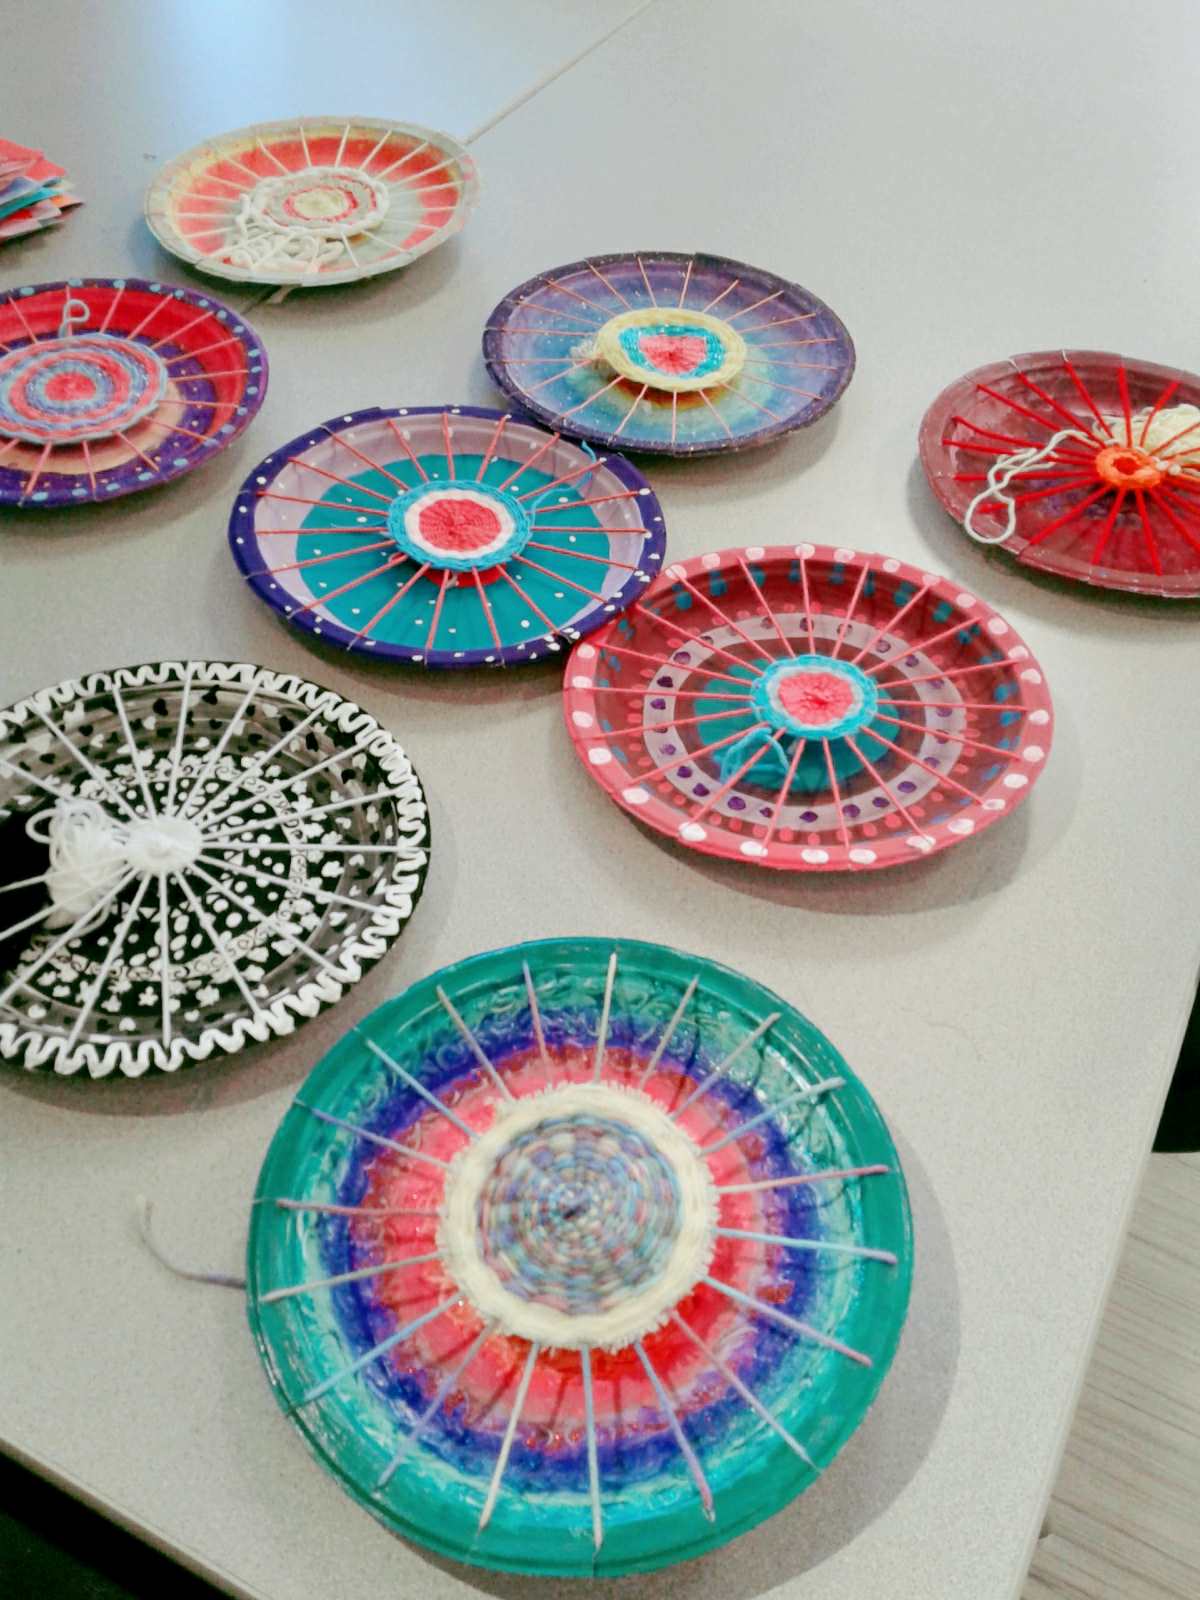 After a few years of having this project on my \u0027to teach\u0027 list I finally got around to trying paper plate weaving with my Grade 4-6 mixed class. & a faithful attempt: Painted Paper Plate Yarn Weaving